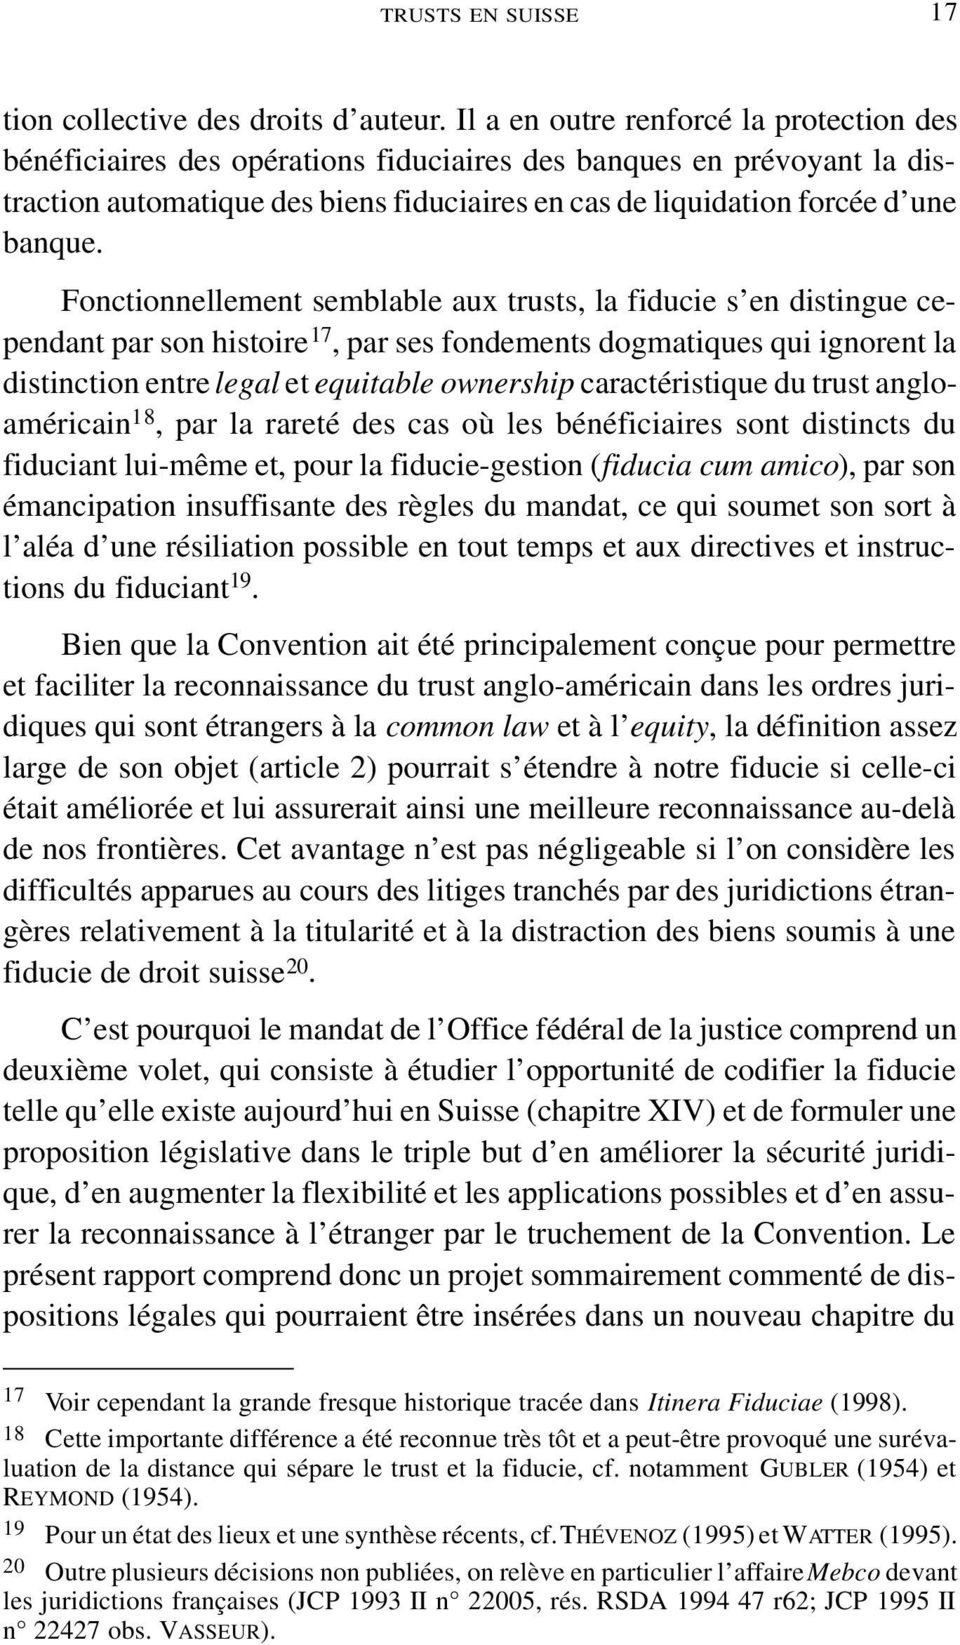 Fonctionnellement semblable aux trusts, la fiducie s en distingue cependant par son histoire 17, par ses fondements dogmatiques qui ignorent la distinction entre legal et equitable ownership